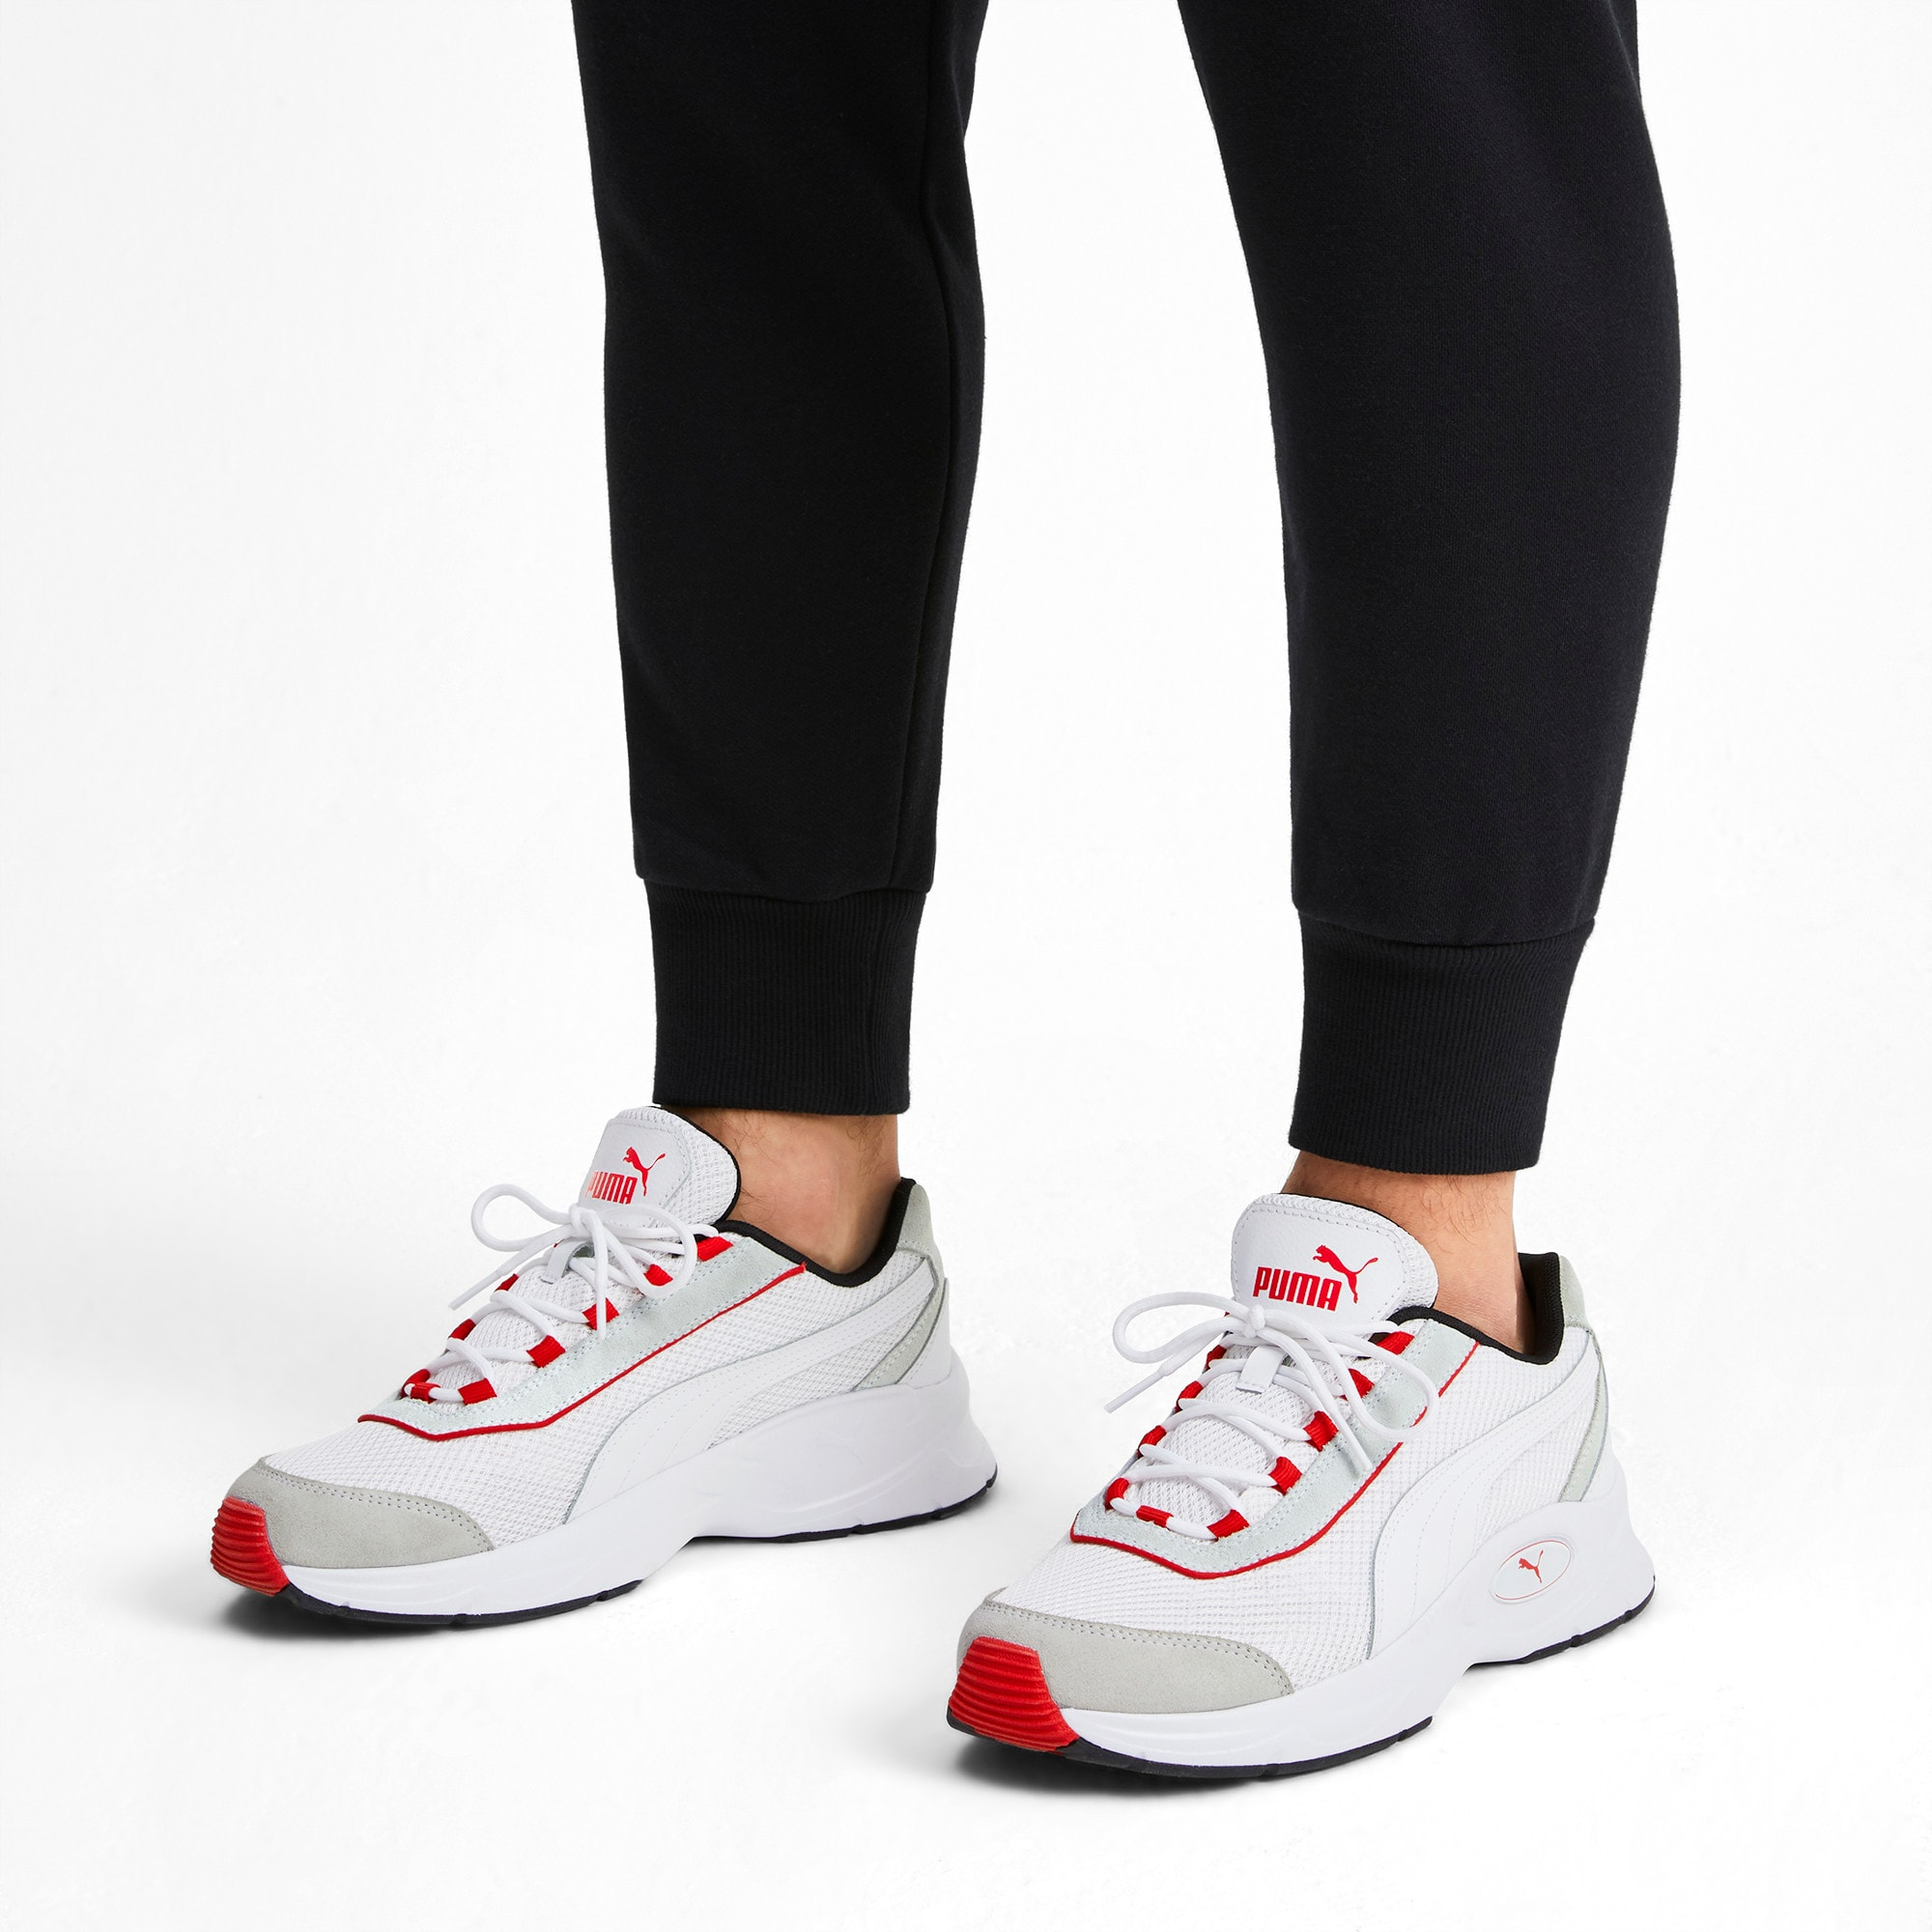 Thumbnail 2 of Nucleus Lux Trainers, Puma White-High Risk Red, medium